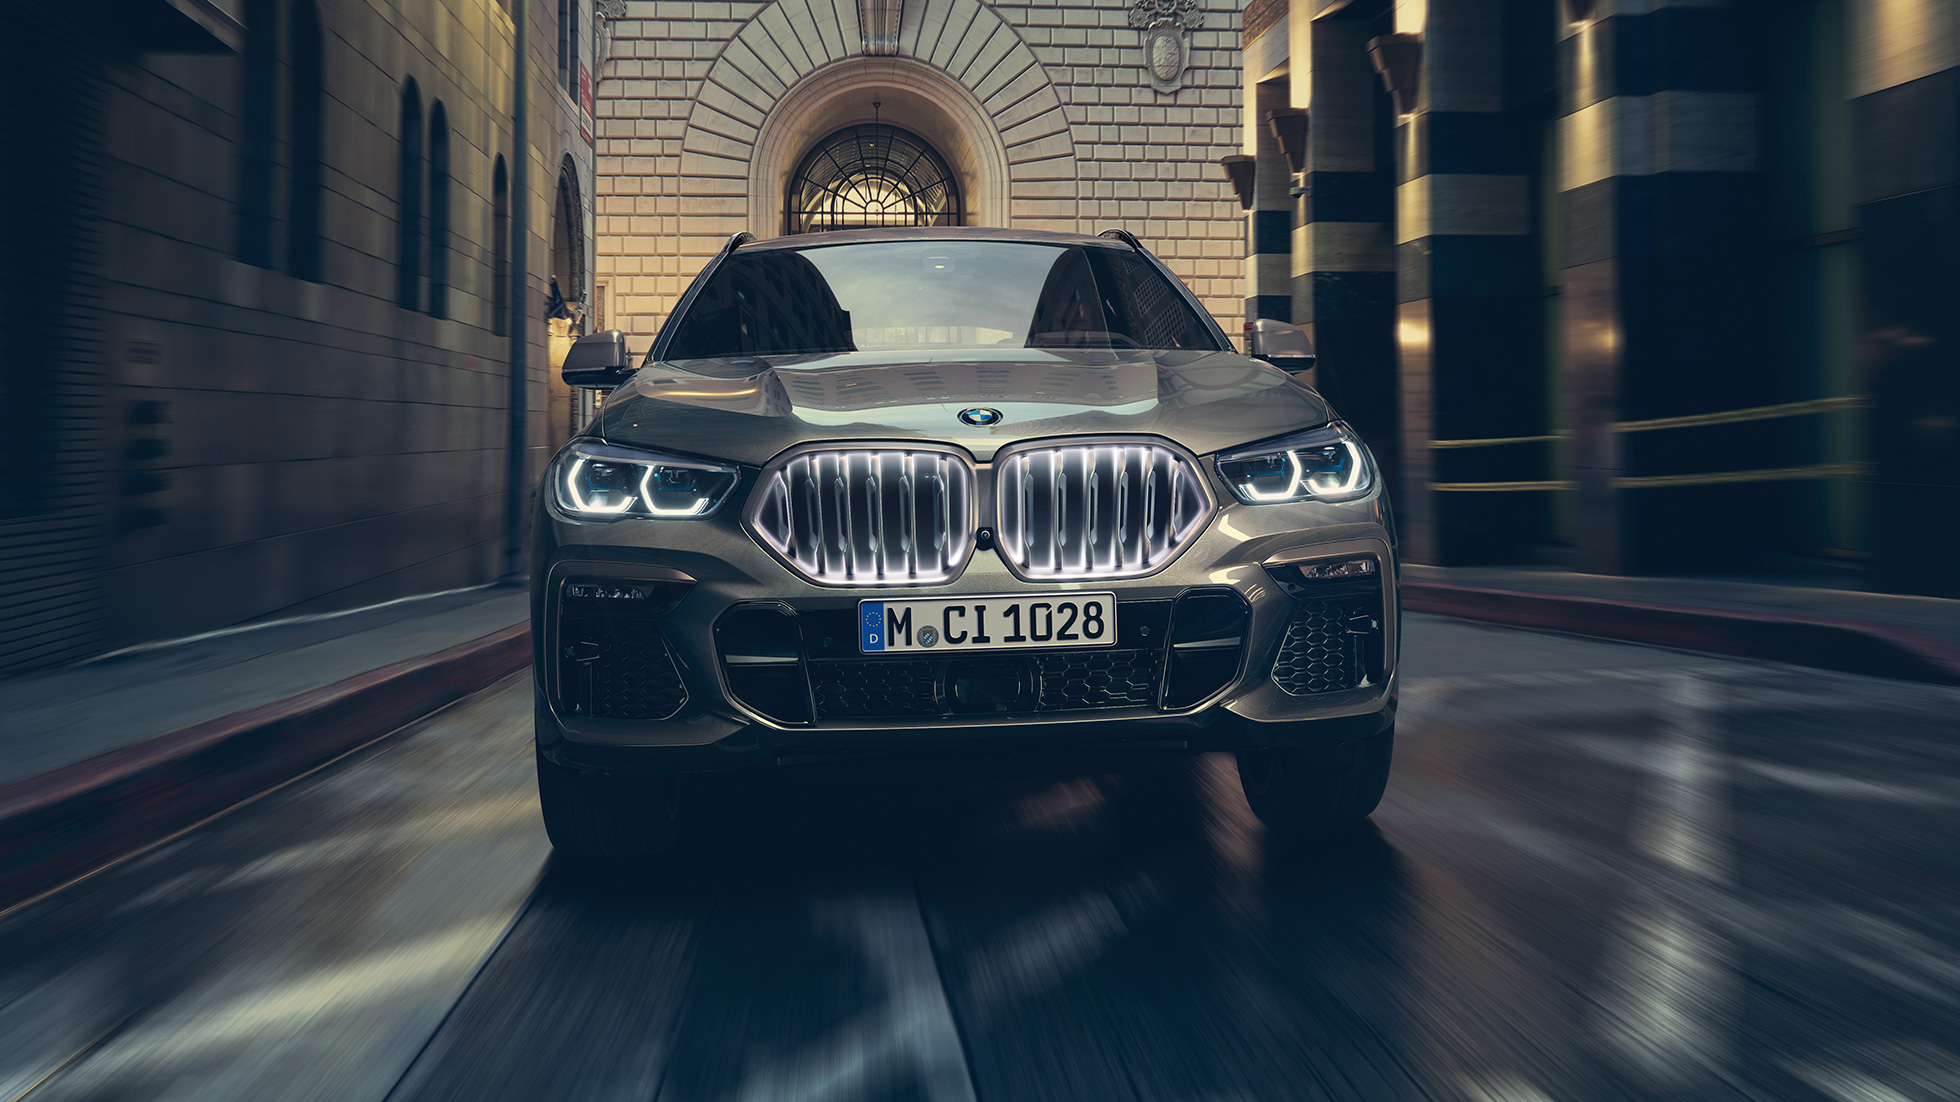 BMW X6 in front view in urban setting.